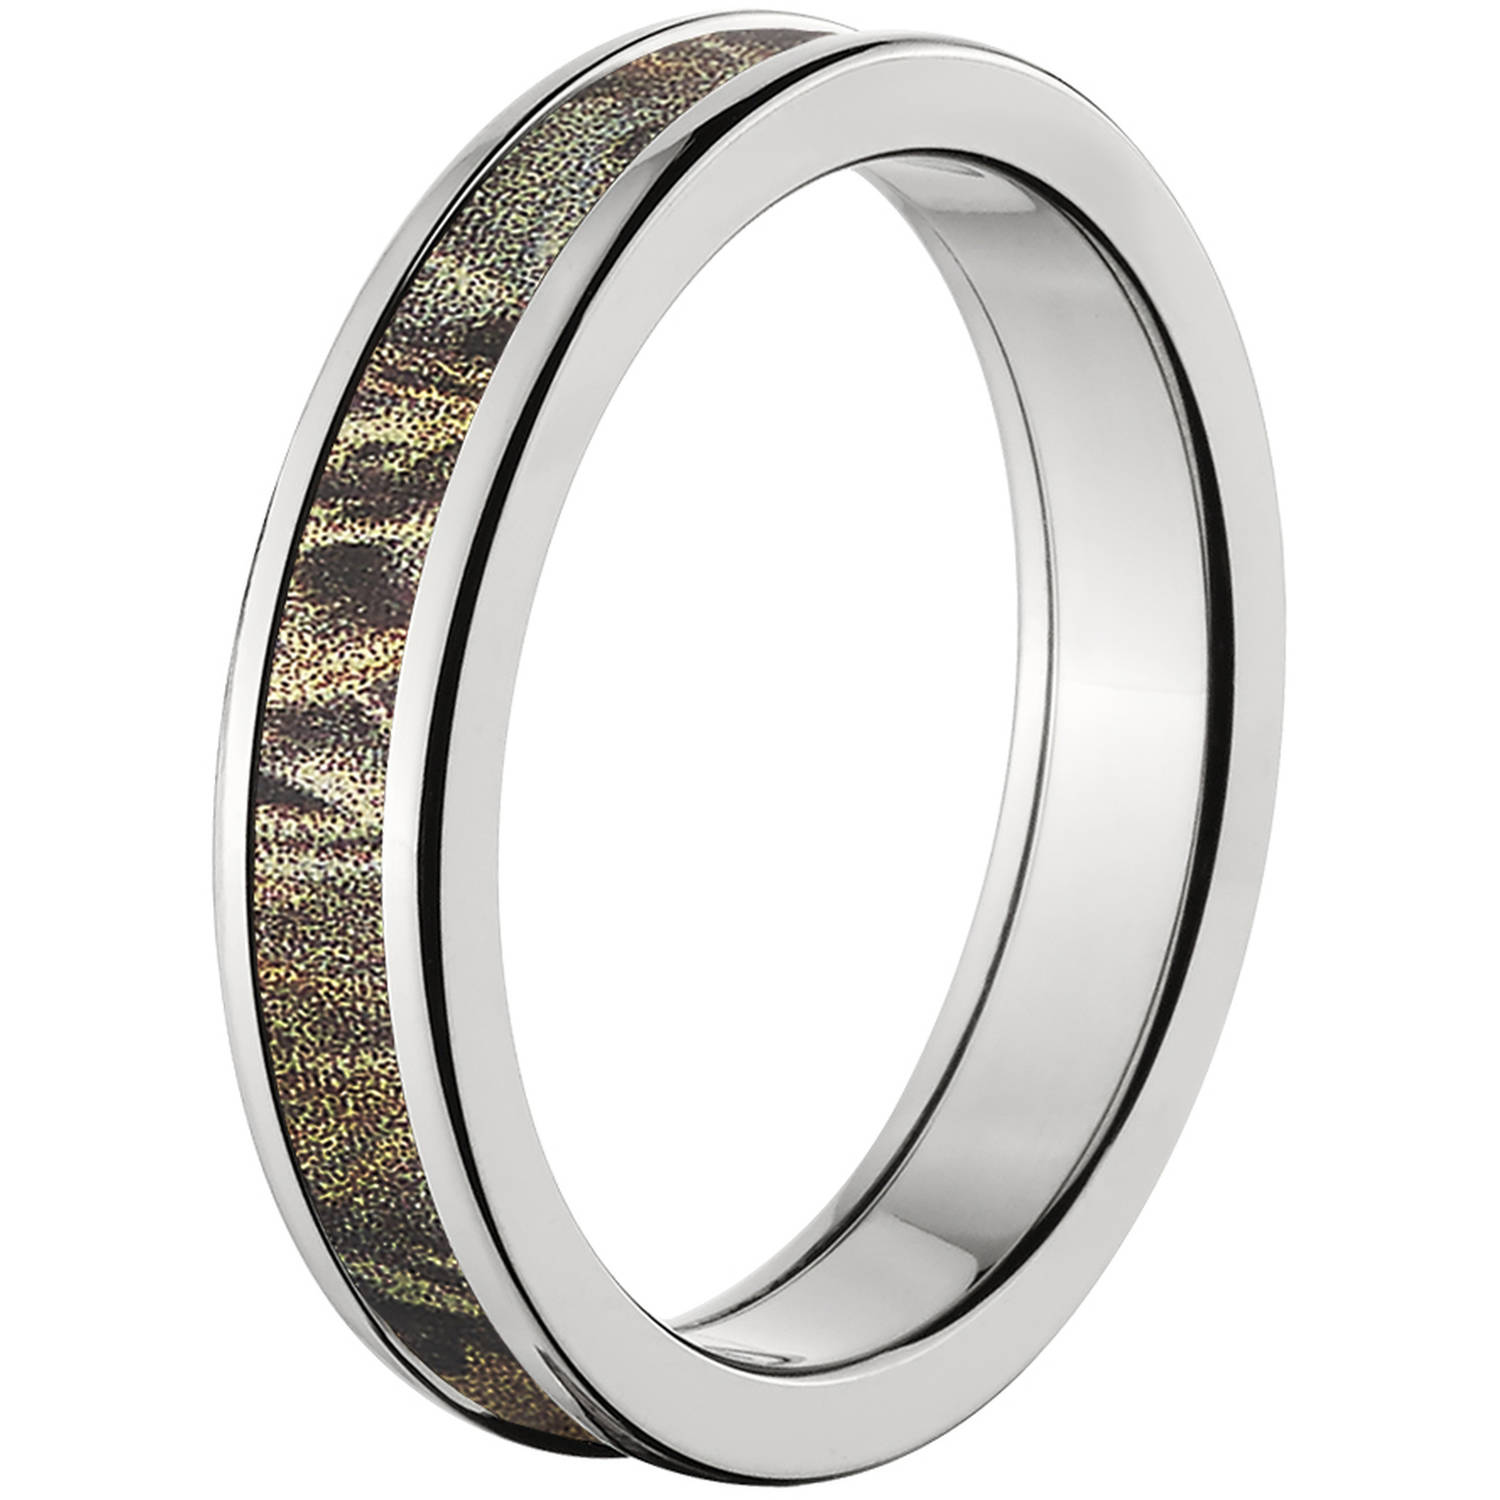 4mm Half Round Titanium Ring with a RealTree Max 4 Camo Inlay